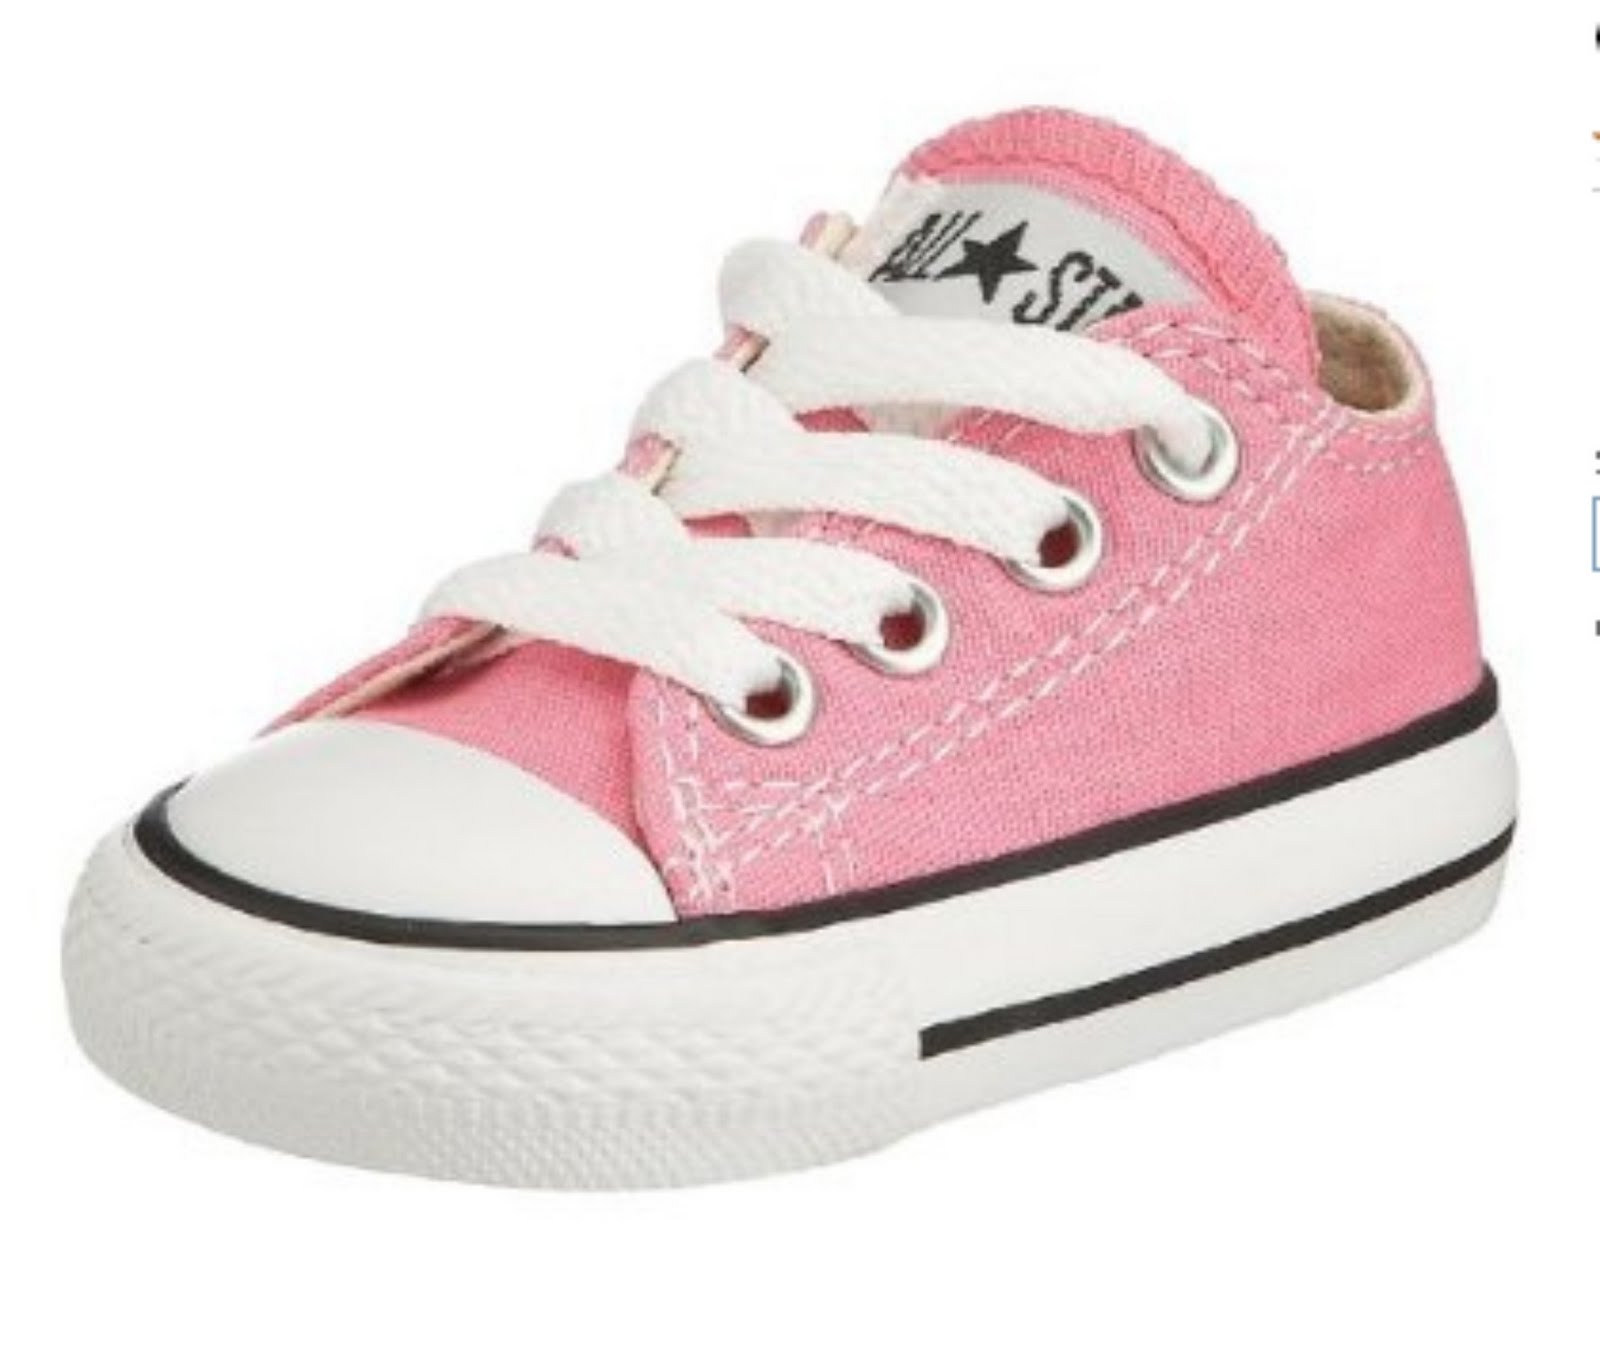 Chic Toddler: Girl Sneakers